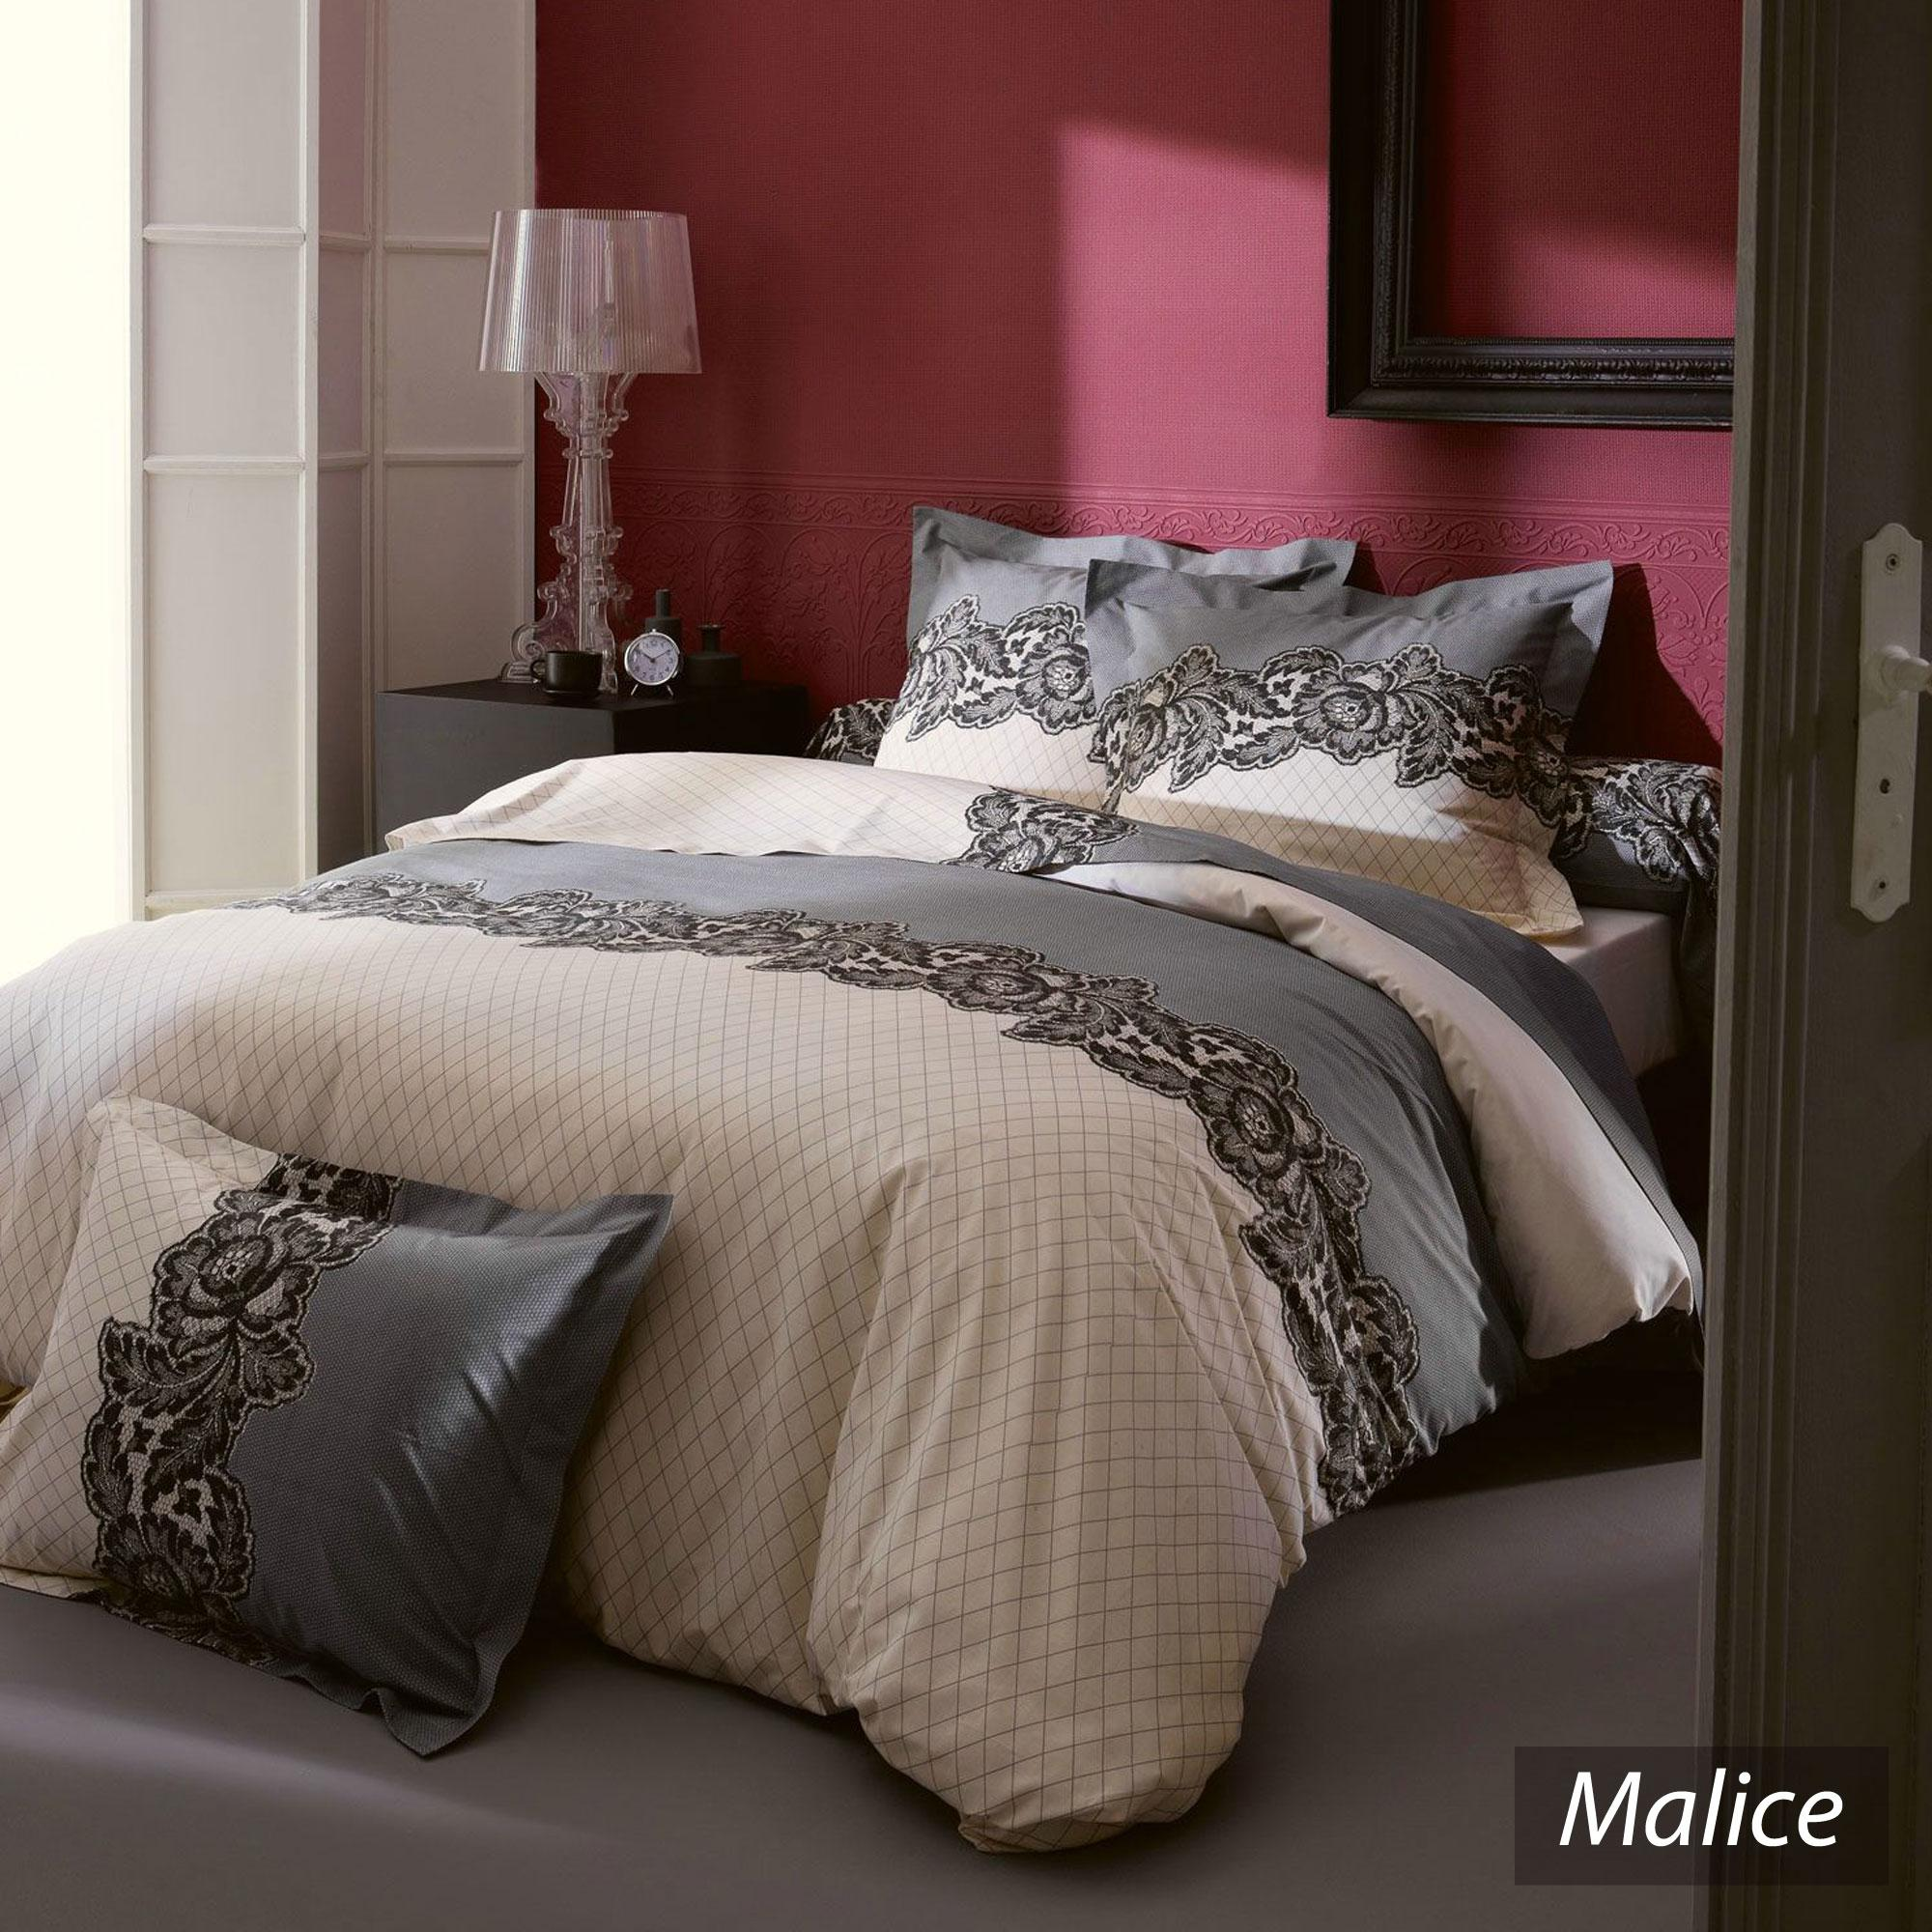 housse de couette 260x240 cm malice linnea vente de linge de maison. Black Bedroom Furniture Sets. Home Design Ideas